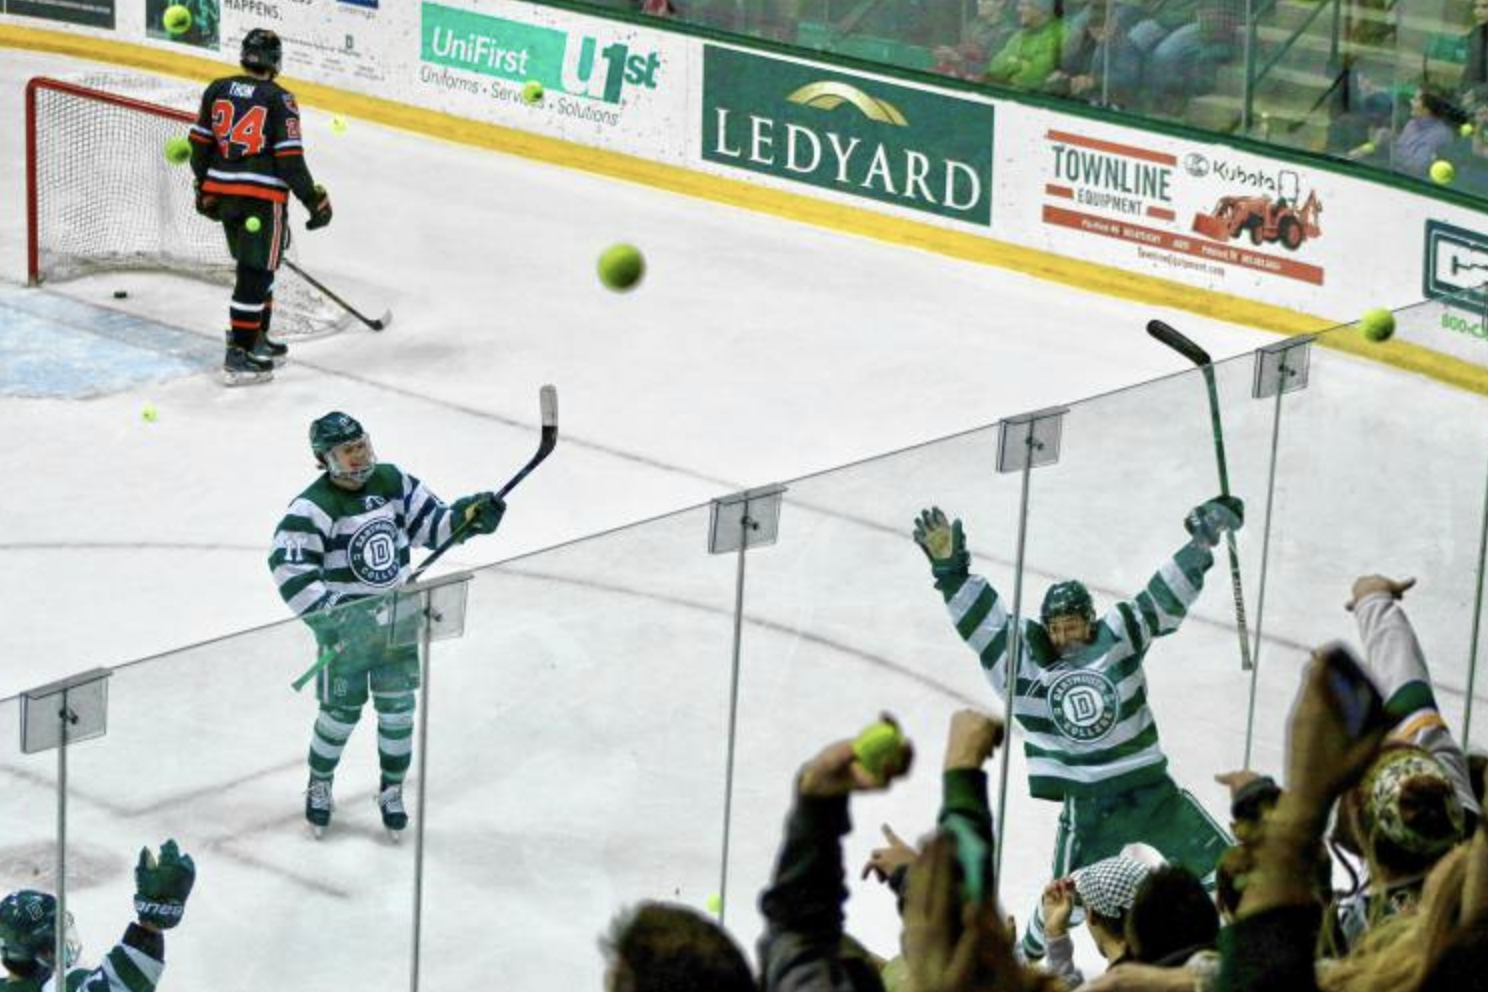 Dartmouth hockey fans have made a tradition at the team's games against rival Cornell by throwing tennis balls on the ice after the Big Green's first goal of the game. Photo courtesy of Valley News